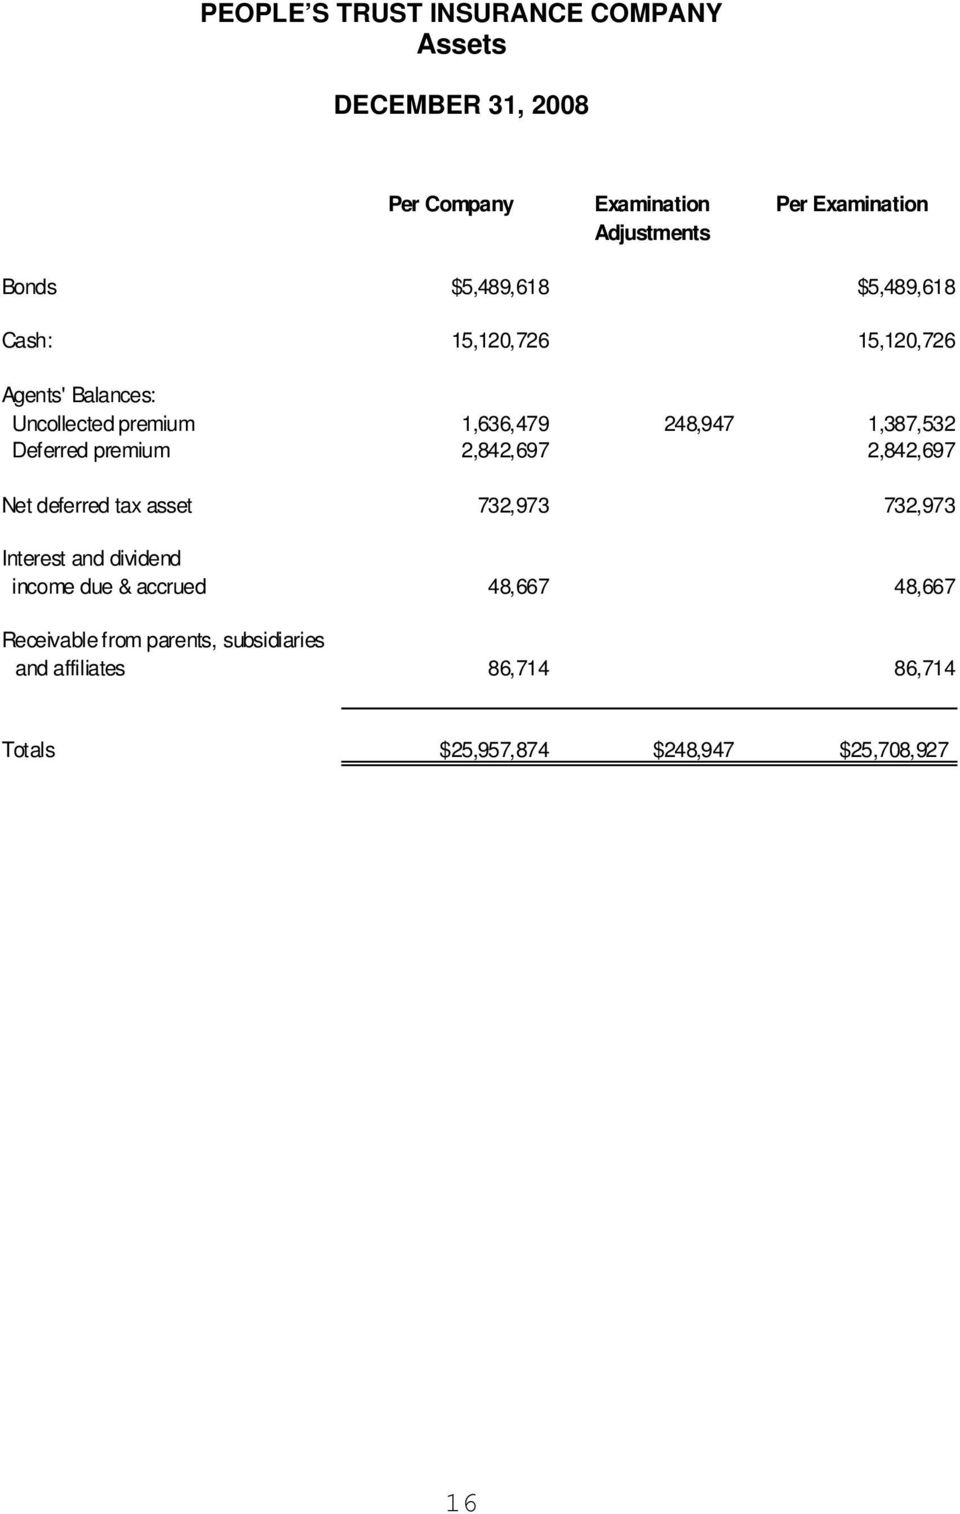 Deferred premium 2,842,697 2,842,697 Net deferred tax asset 732,973 732,973 Interest and dividend income due & accrued